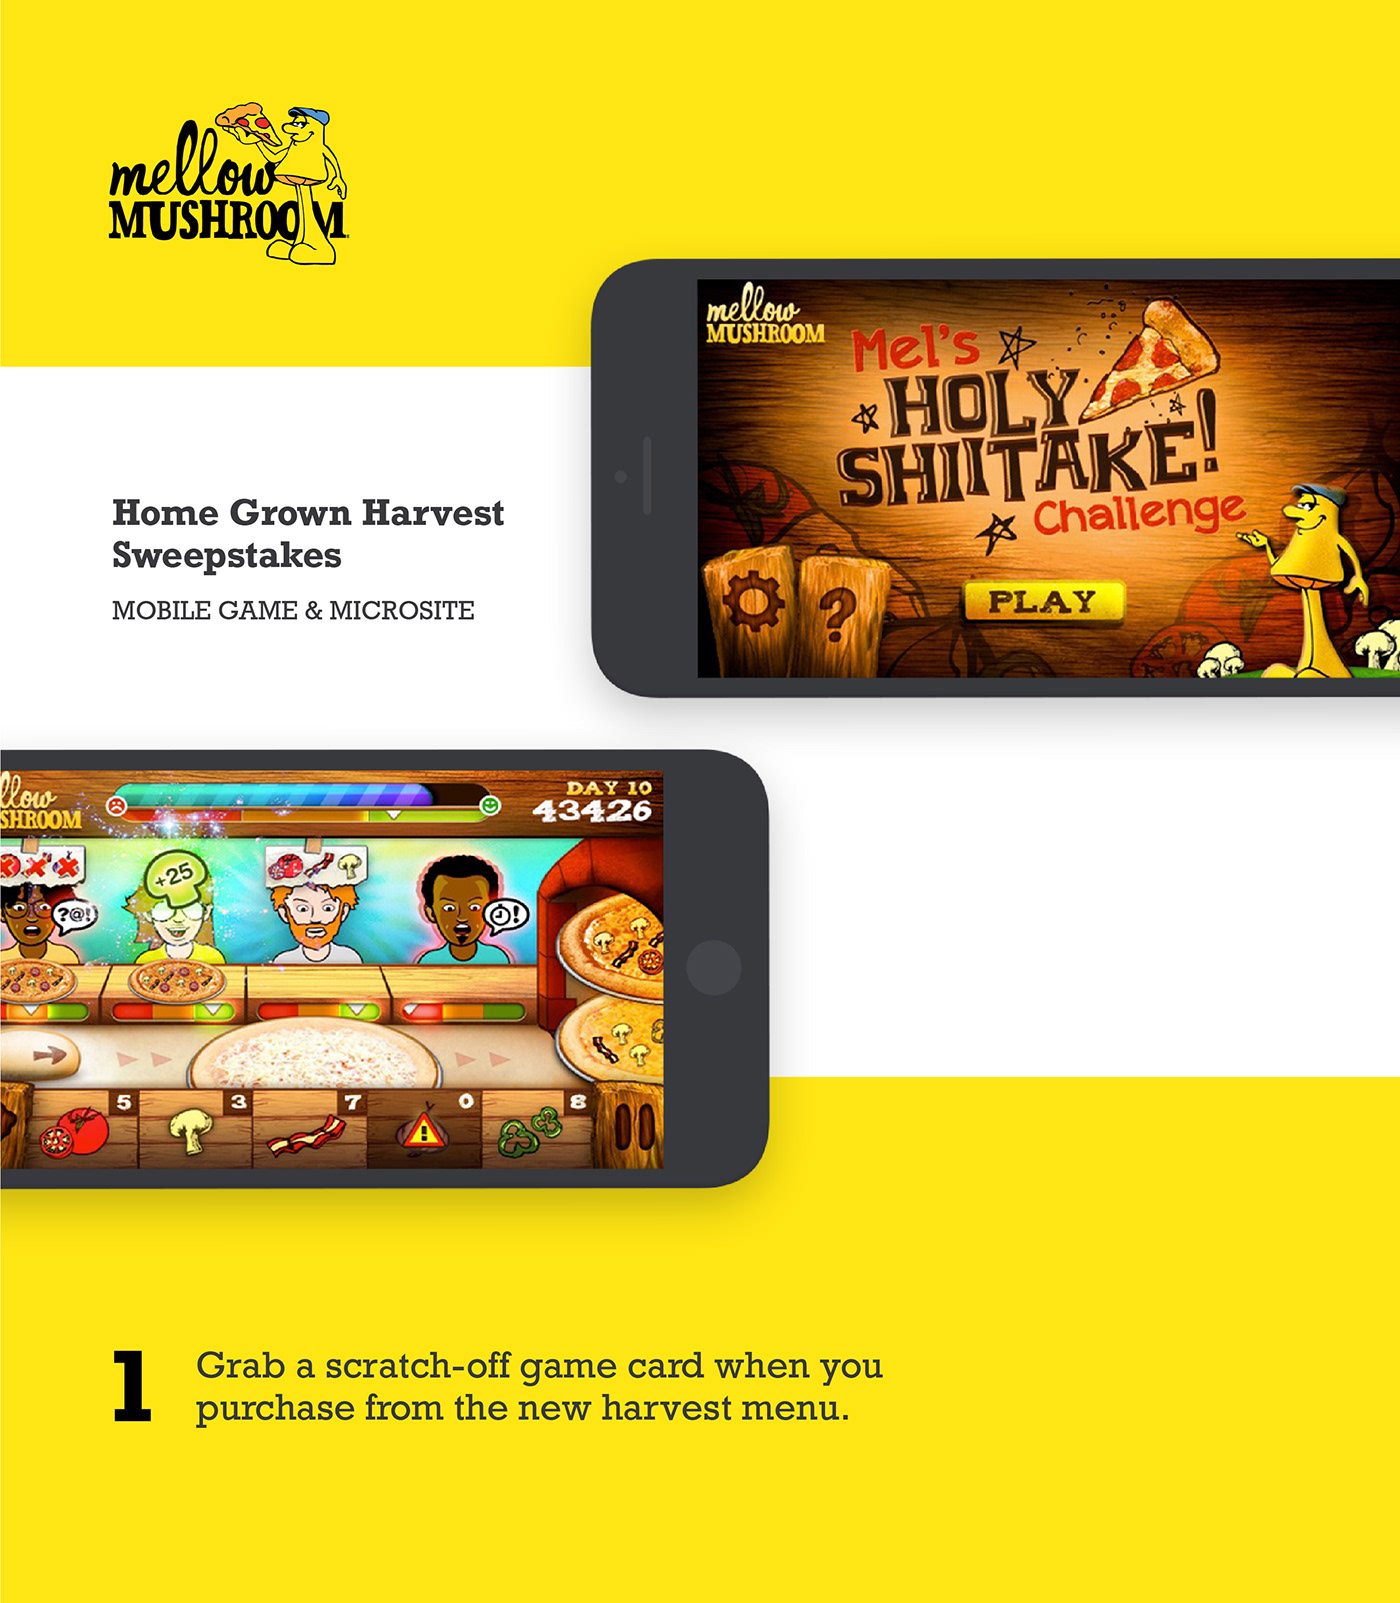 mellow mushroom Pizza interactive Micro Site game iphone android Web